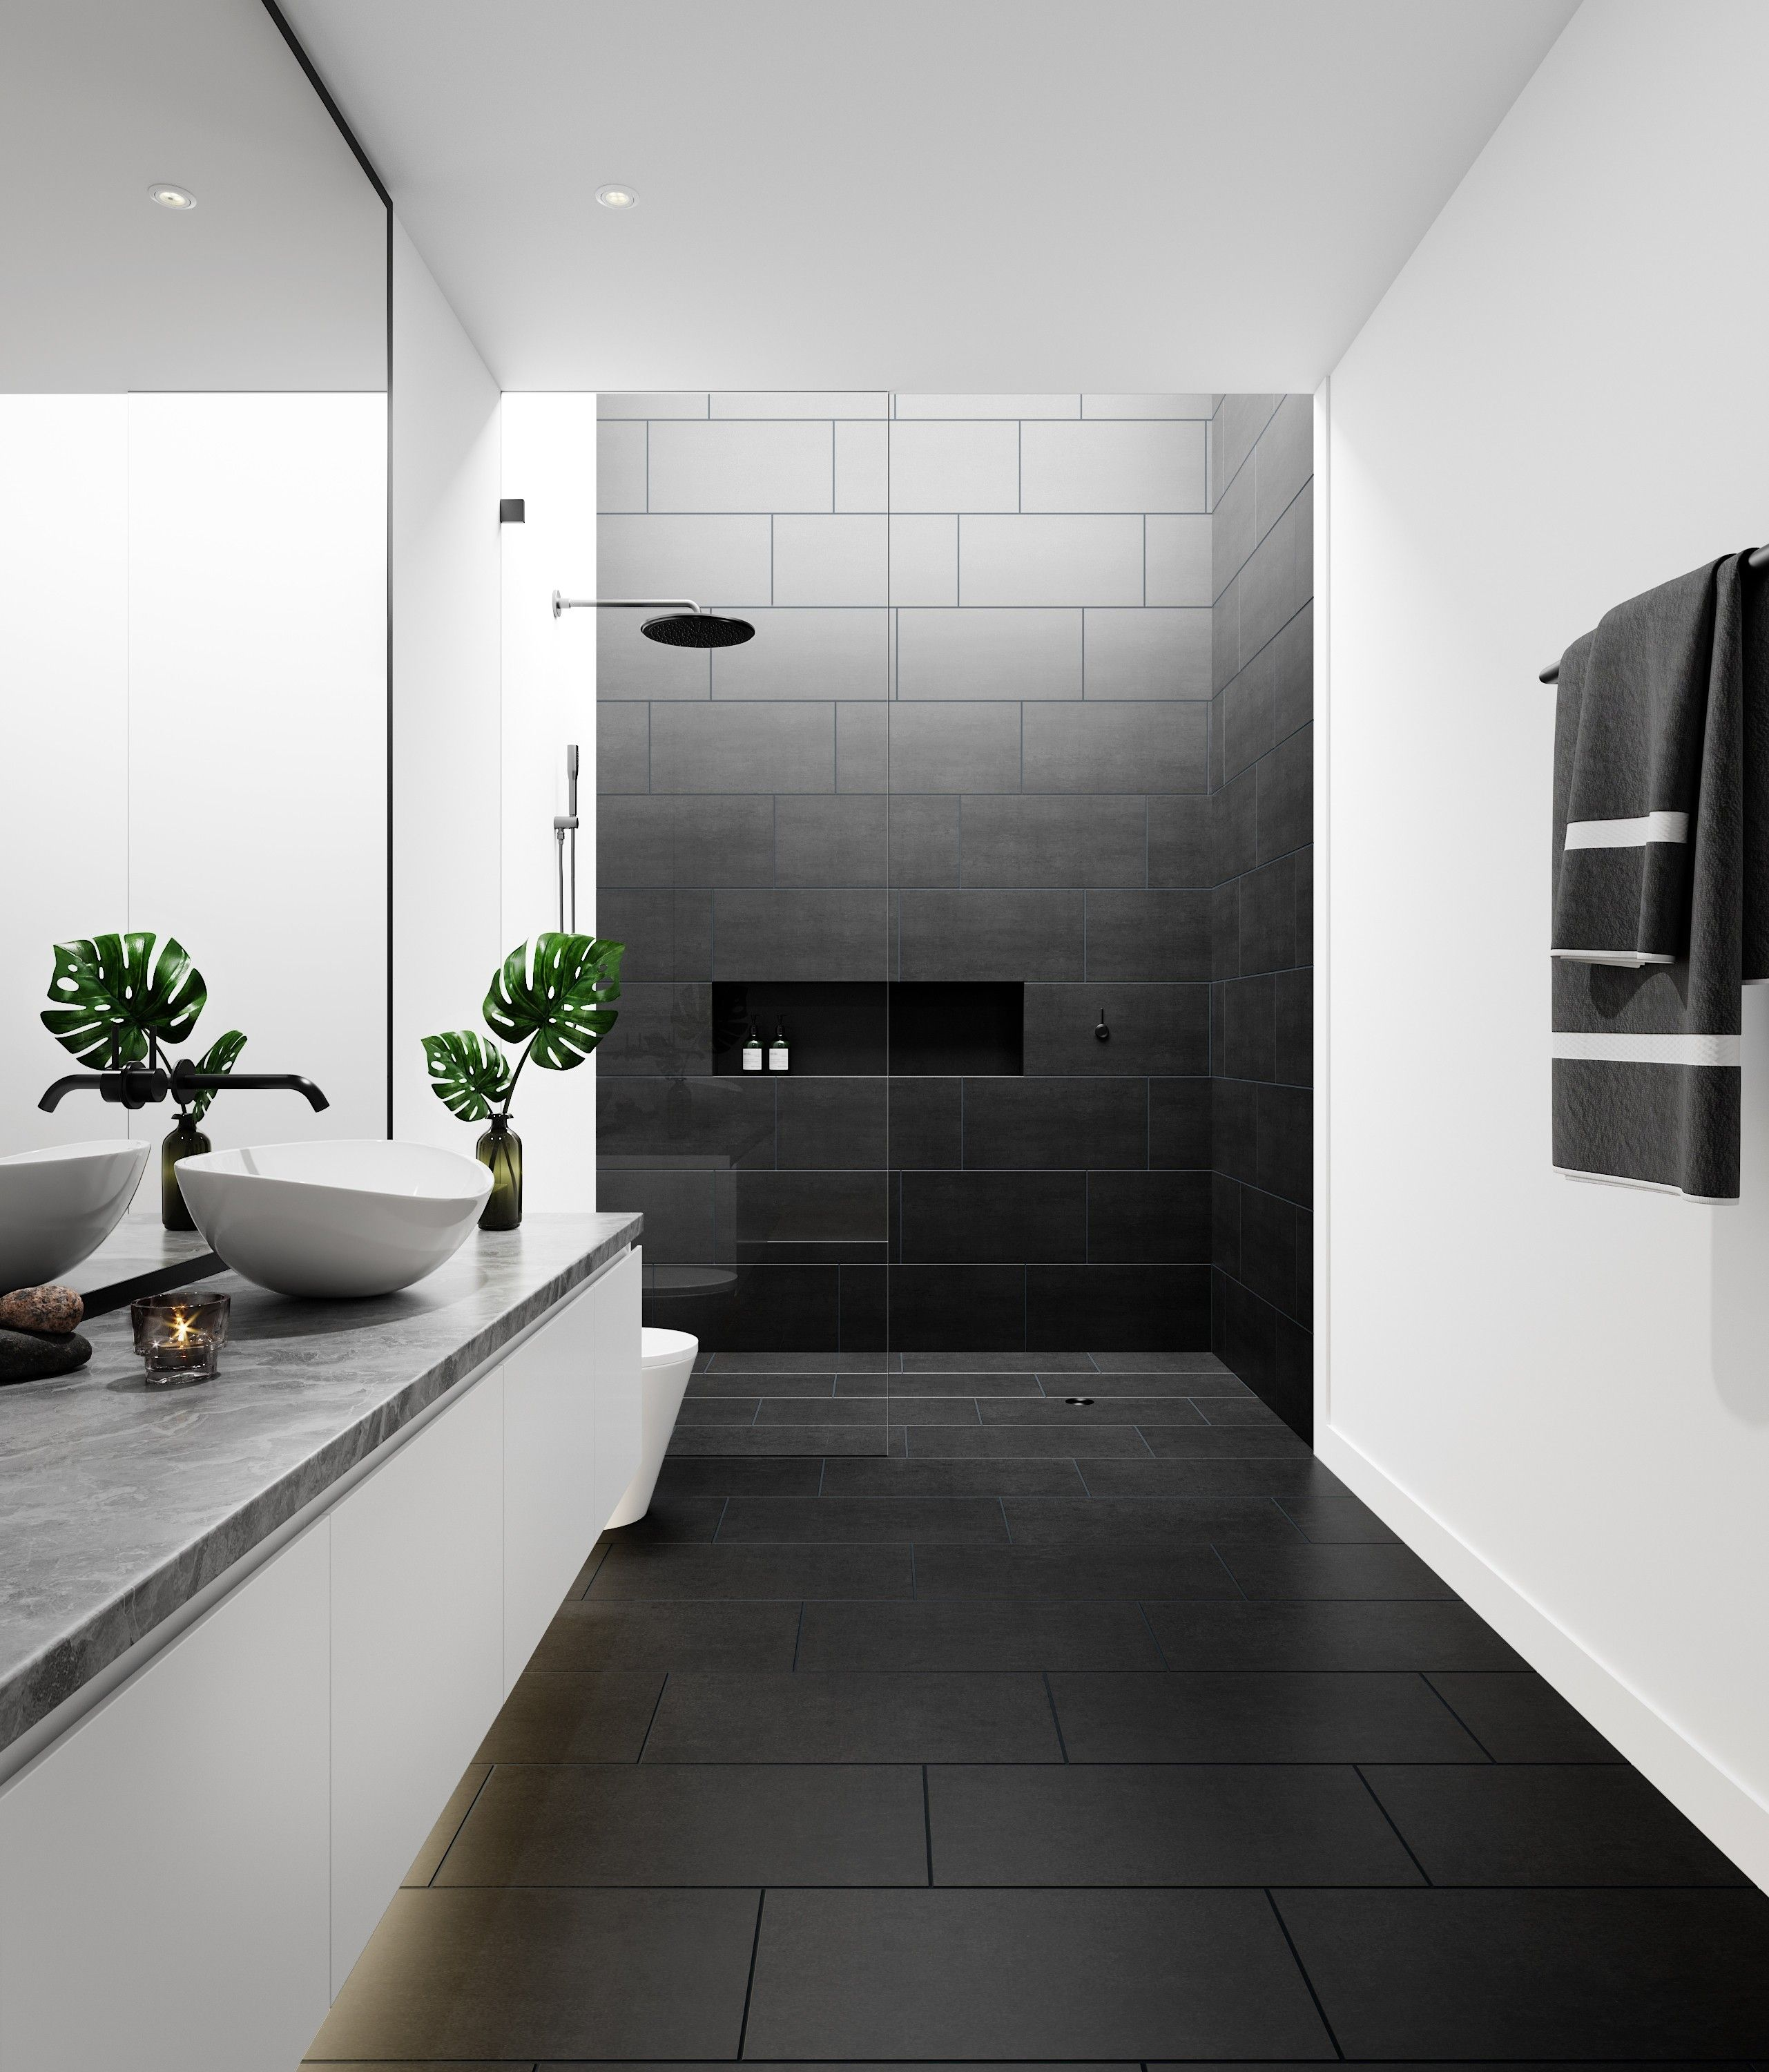 Lounge Black Matt Porcelain Black Tile Bathrooms Modern Bathroom Tile Bathroom Interior Design